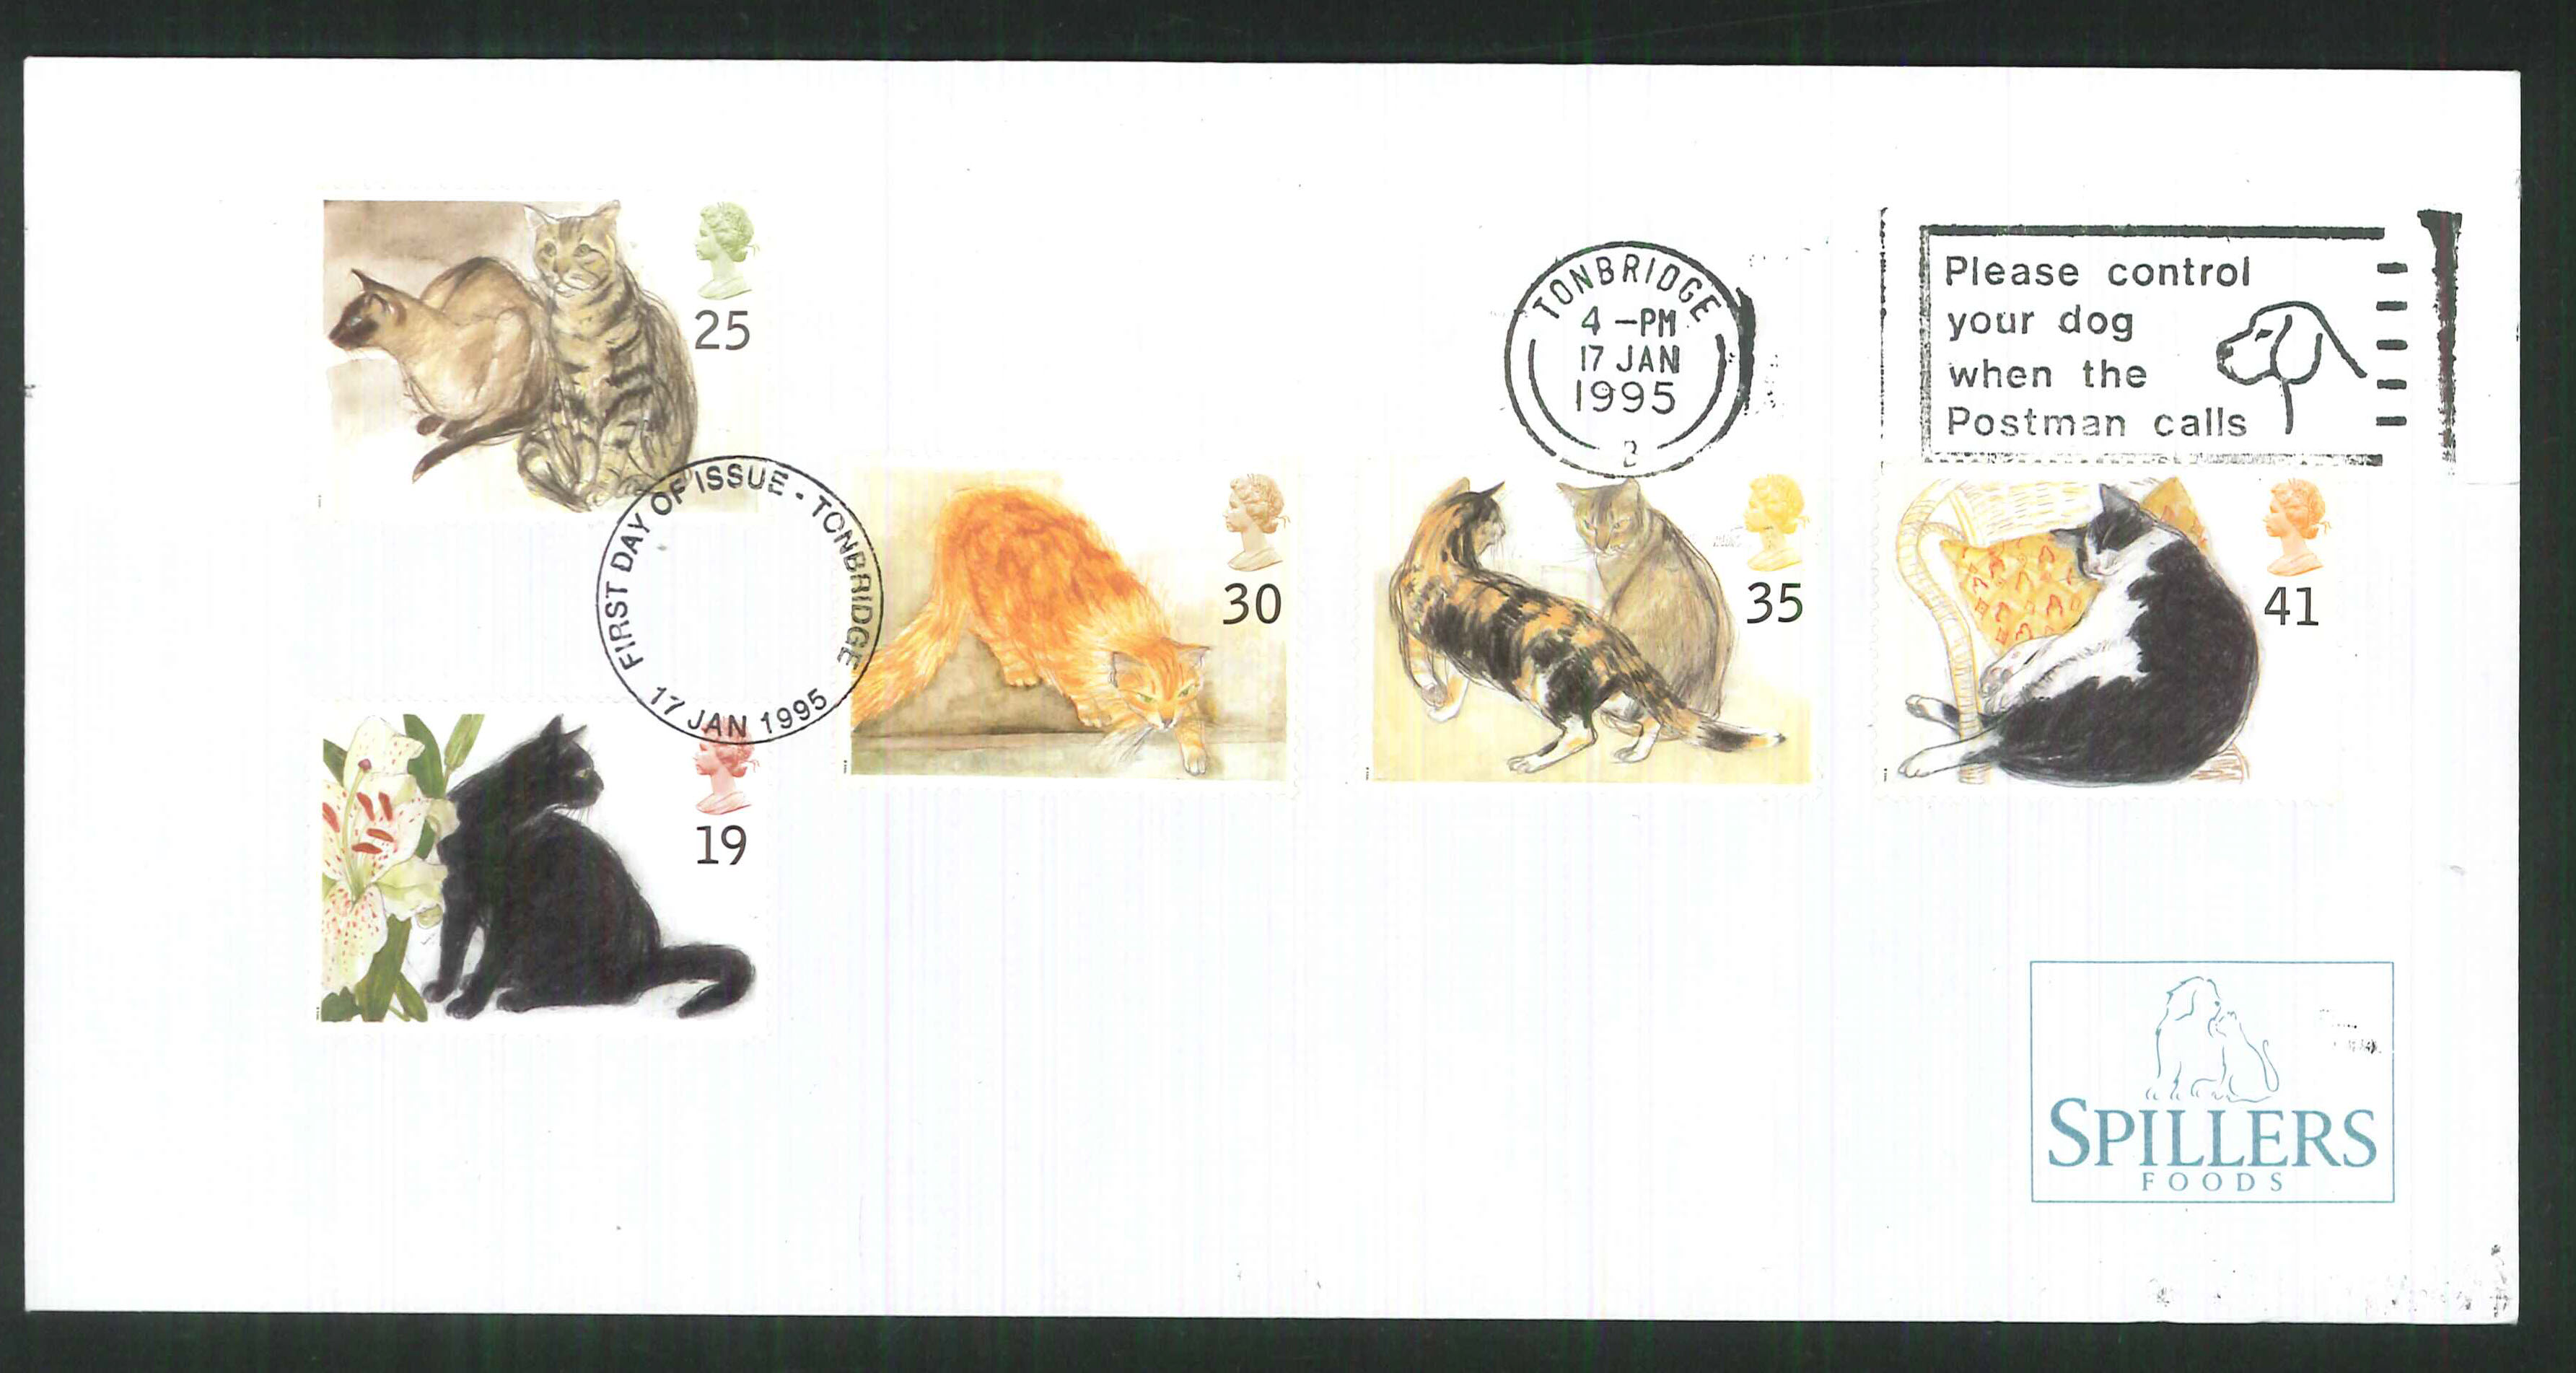 1995 - Cats First Day Cover - Control your Dog Slogan Postmark